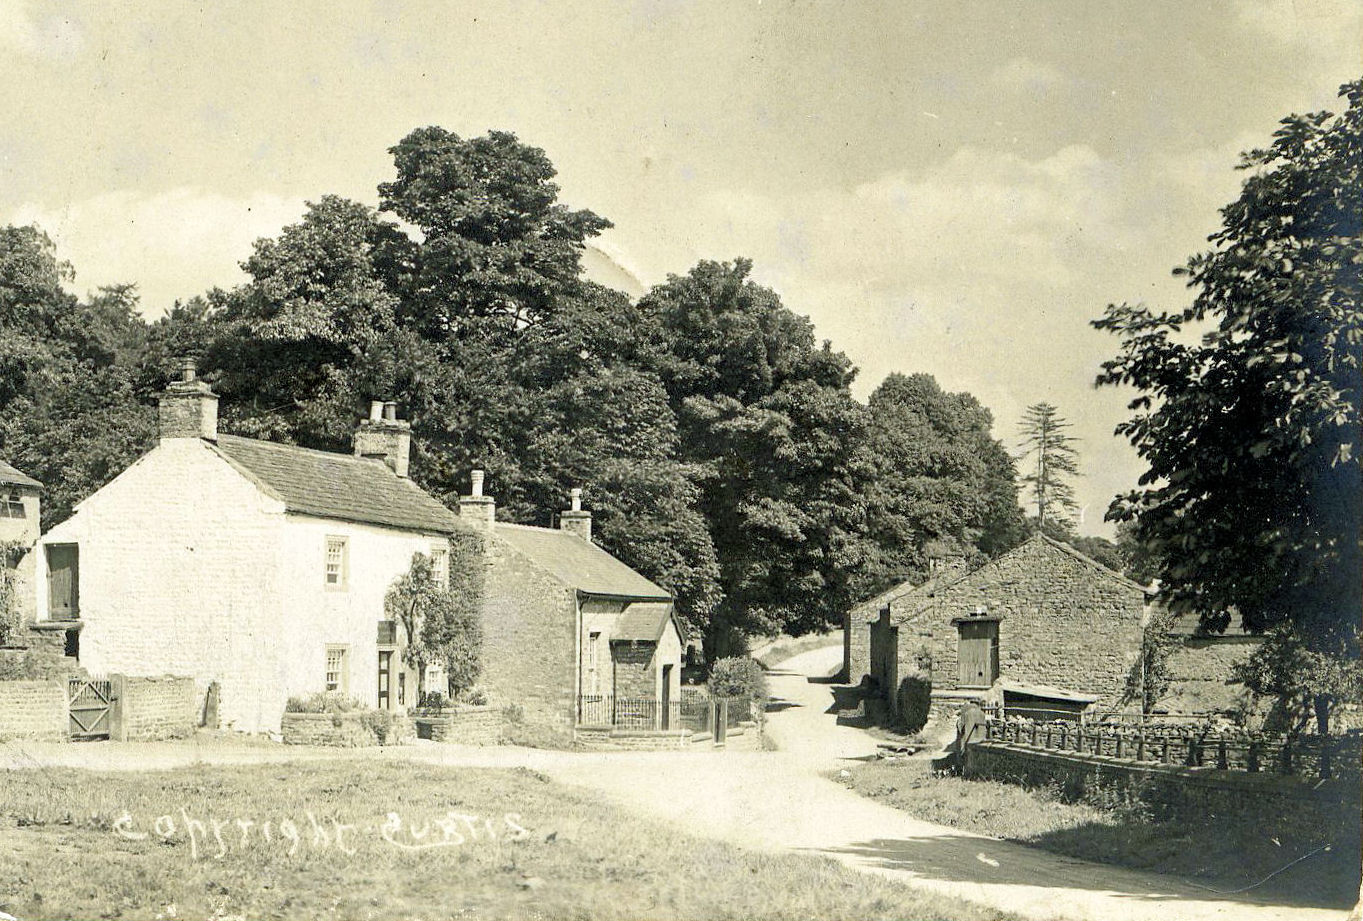 Thoralby, Shop, Post Office and Reading Room, c.1915.